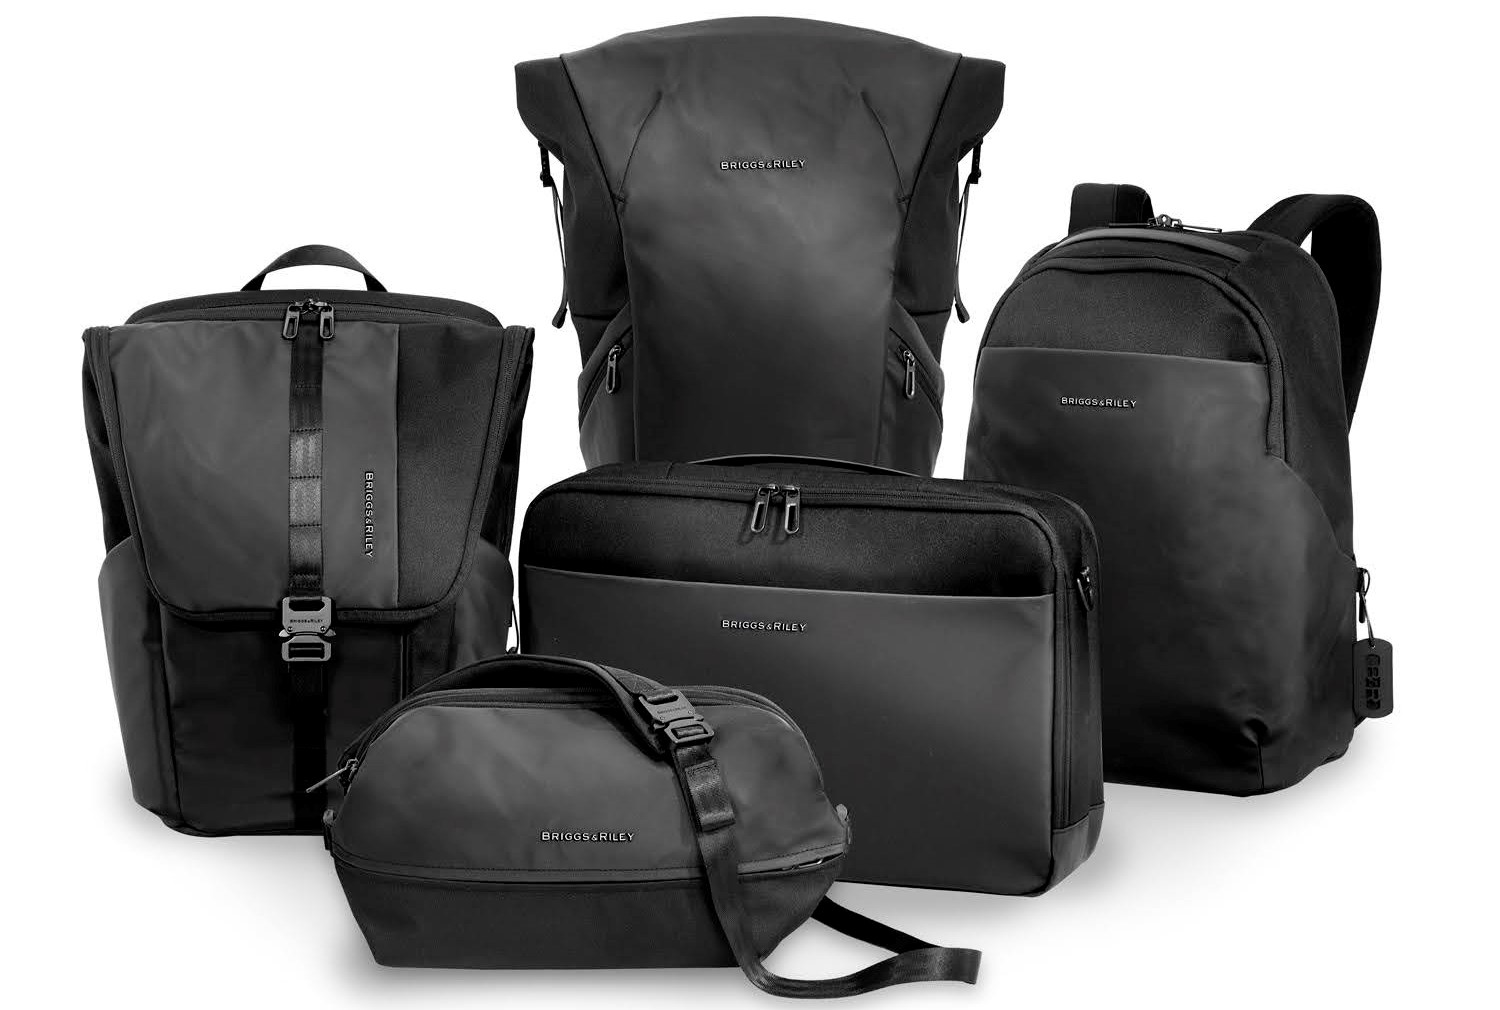 Briggs & Riley DELVE Collection of travel bags